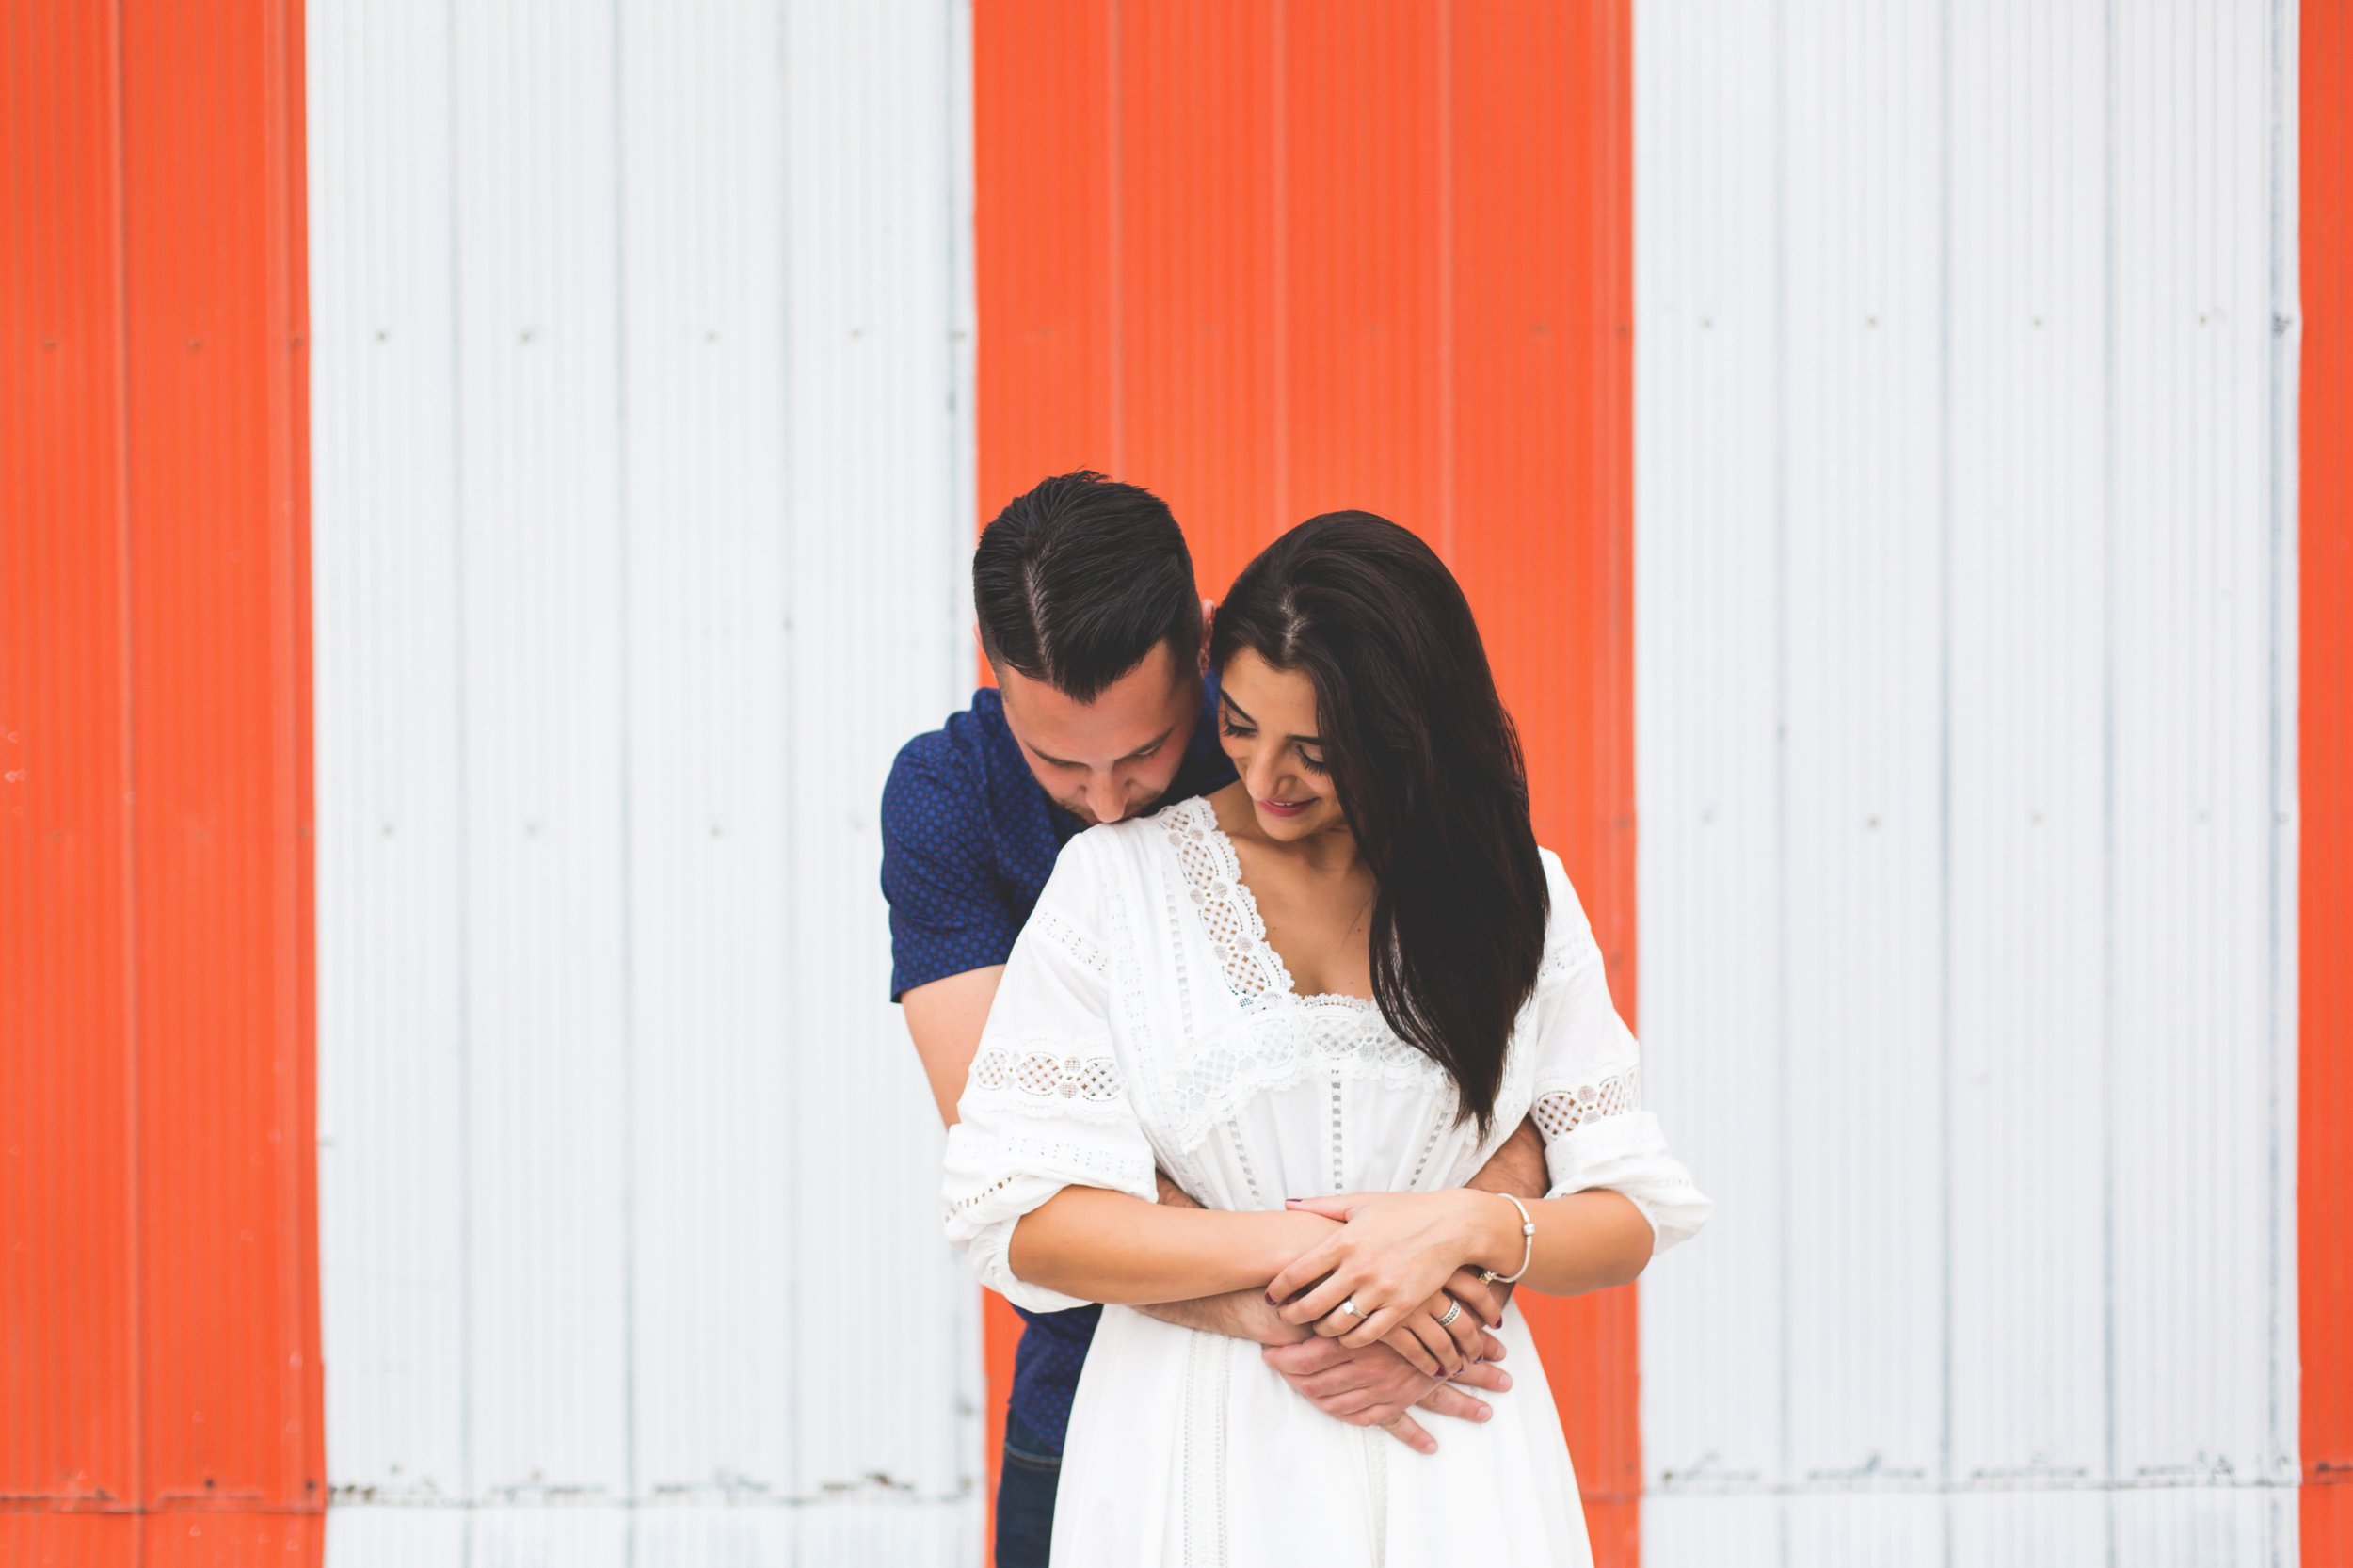 Engagement-Session-Hamilton-Burlington-Oakville-Toronto-Niagara-Wedding-Photographer-Engaged-Photography-Brantford-Airport-HamOnt-Engaged-Moments-by-Lauren-Photo-Image-17.png